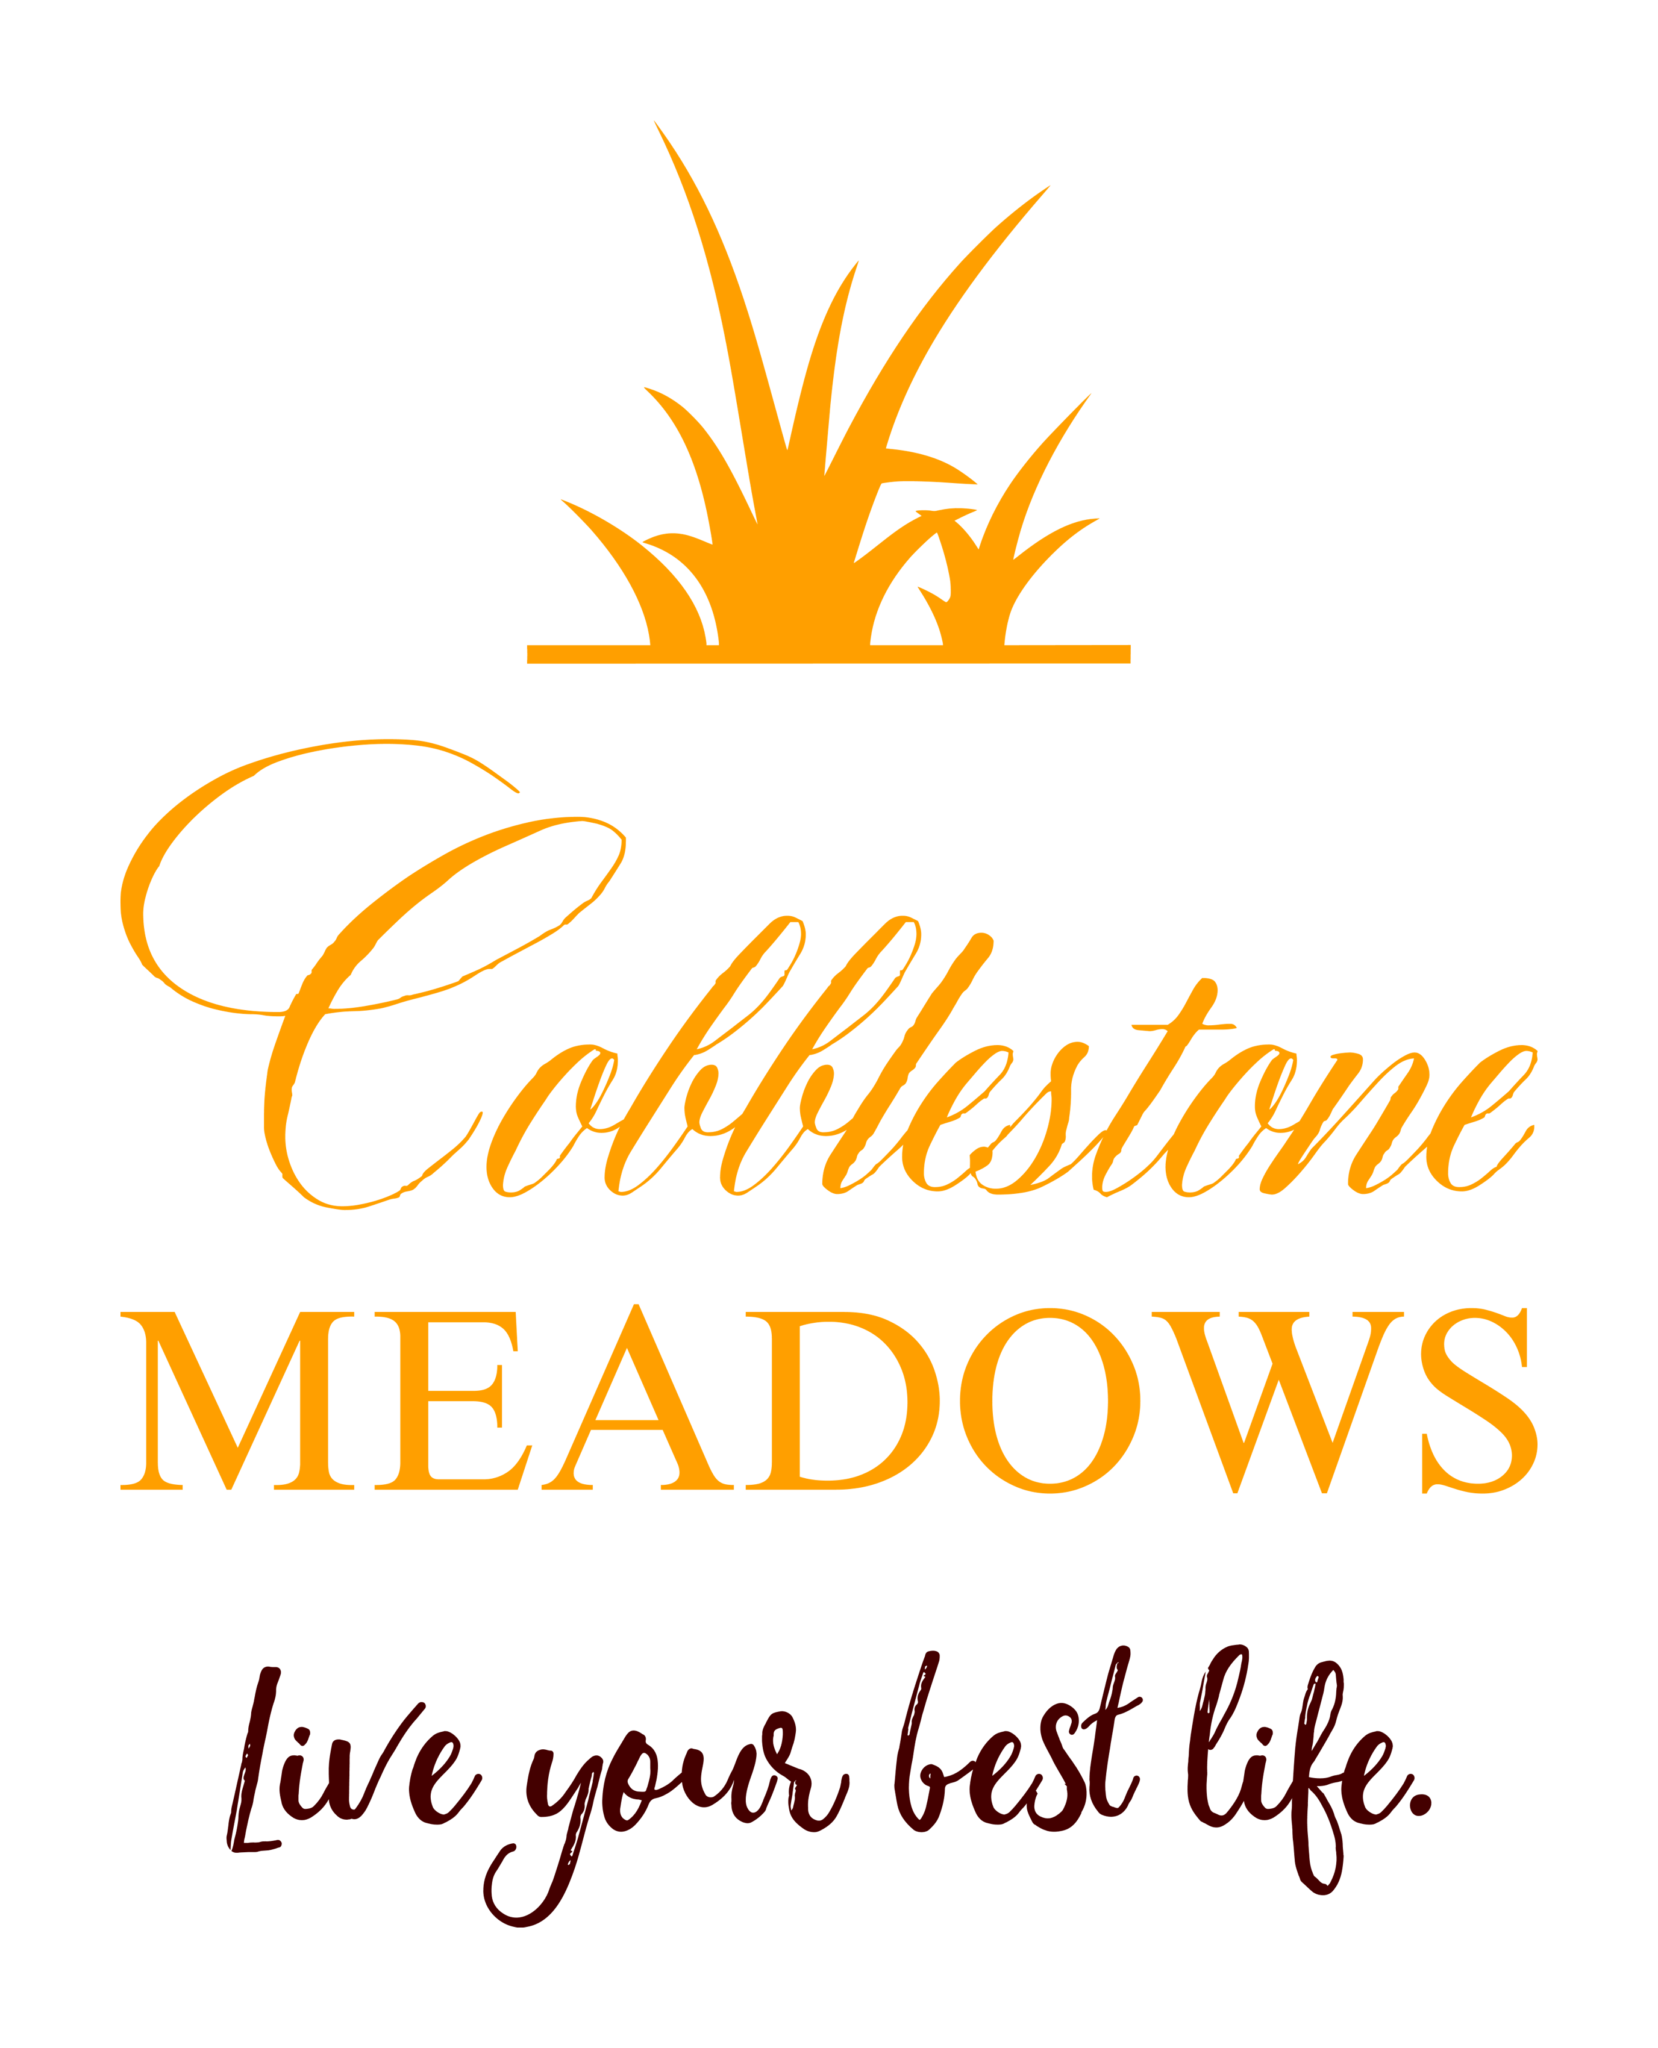 Cobblestone Meadows